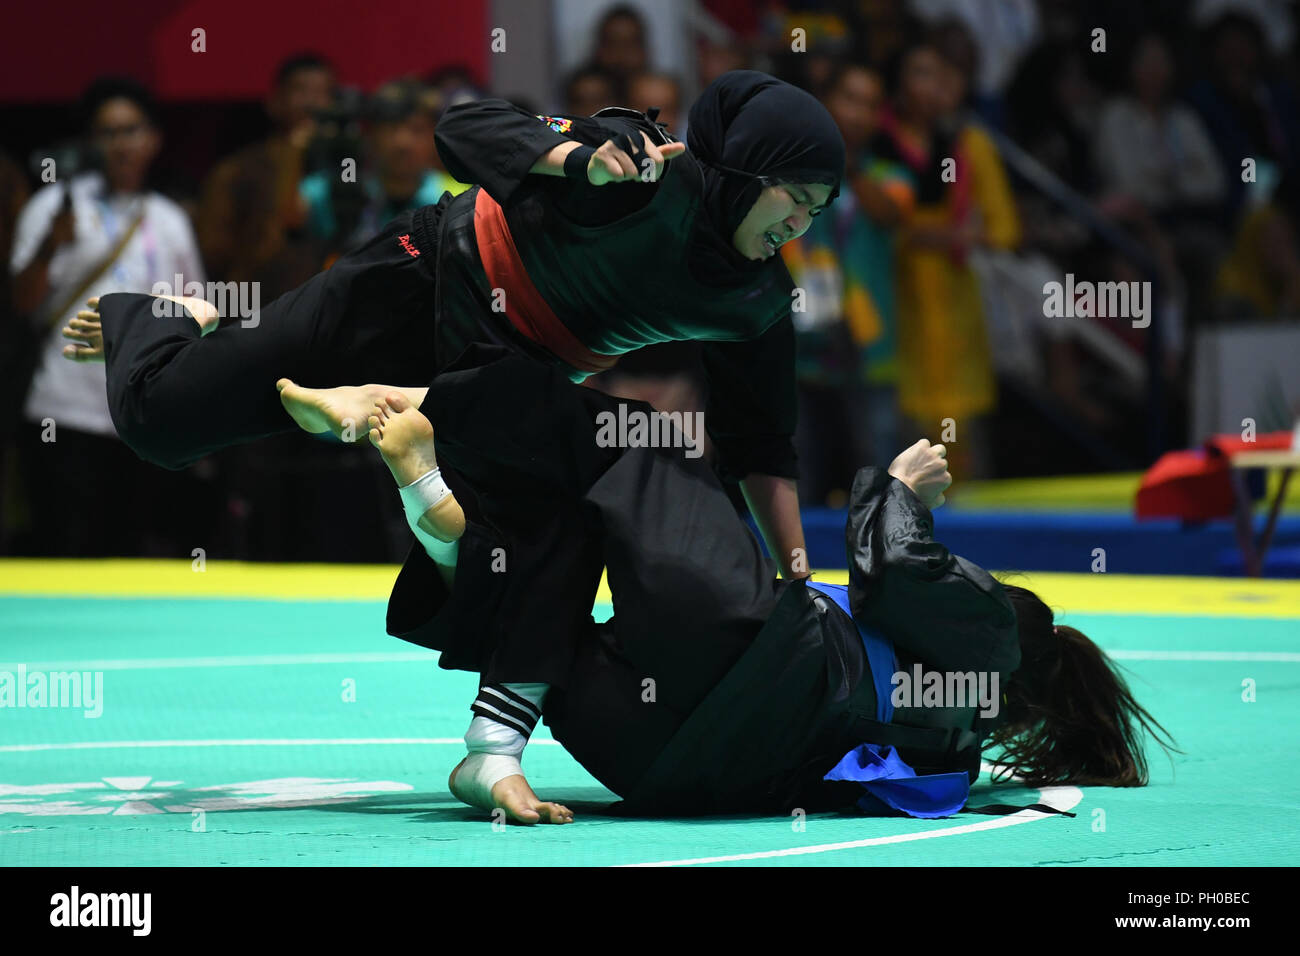 Jakarta, Indonesia. 29th Aug, 2018. Pipiet Kamelia of Indonesia (L) competes during the Pencak Silat Women's 60kg to 65kg gold medal match agaisnt Nguyen Thi Cam Nhi of Vietnam at the 18th Asian Games in Jakarta, Indonesia, Aug. 29, 2018. Credit: Pan Yulong/Xinhua/Alamy Live News - Stock Image